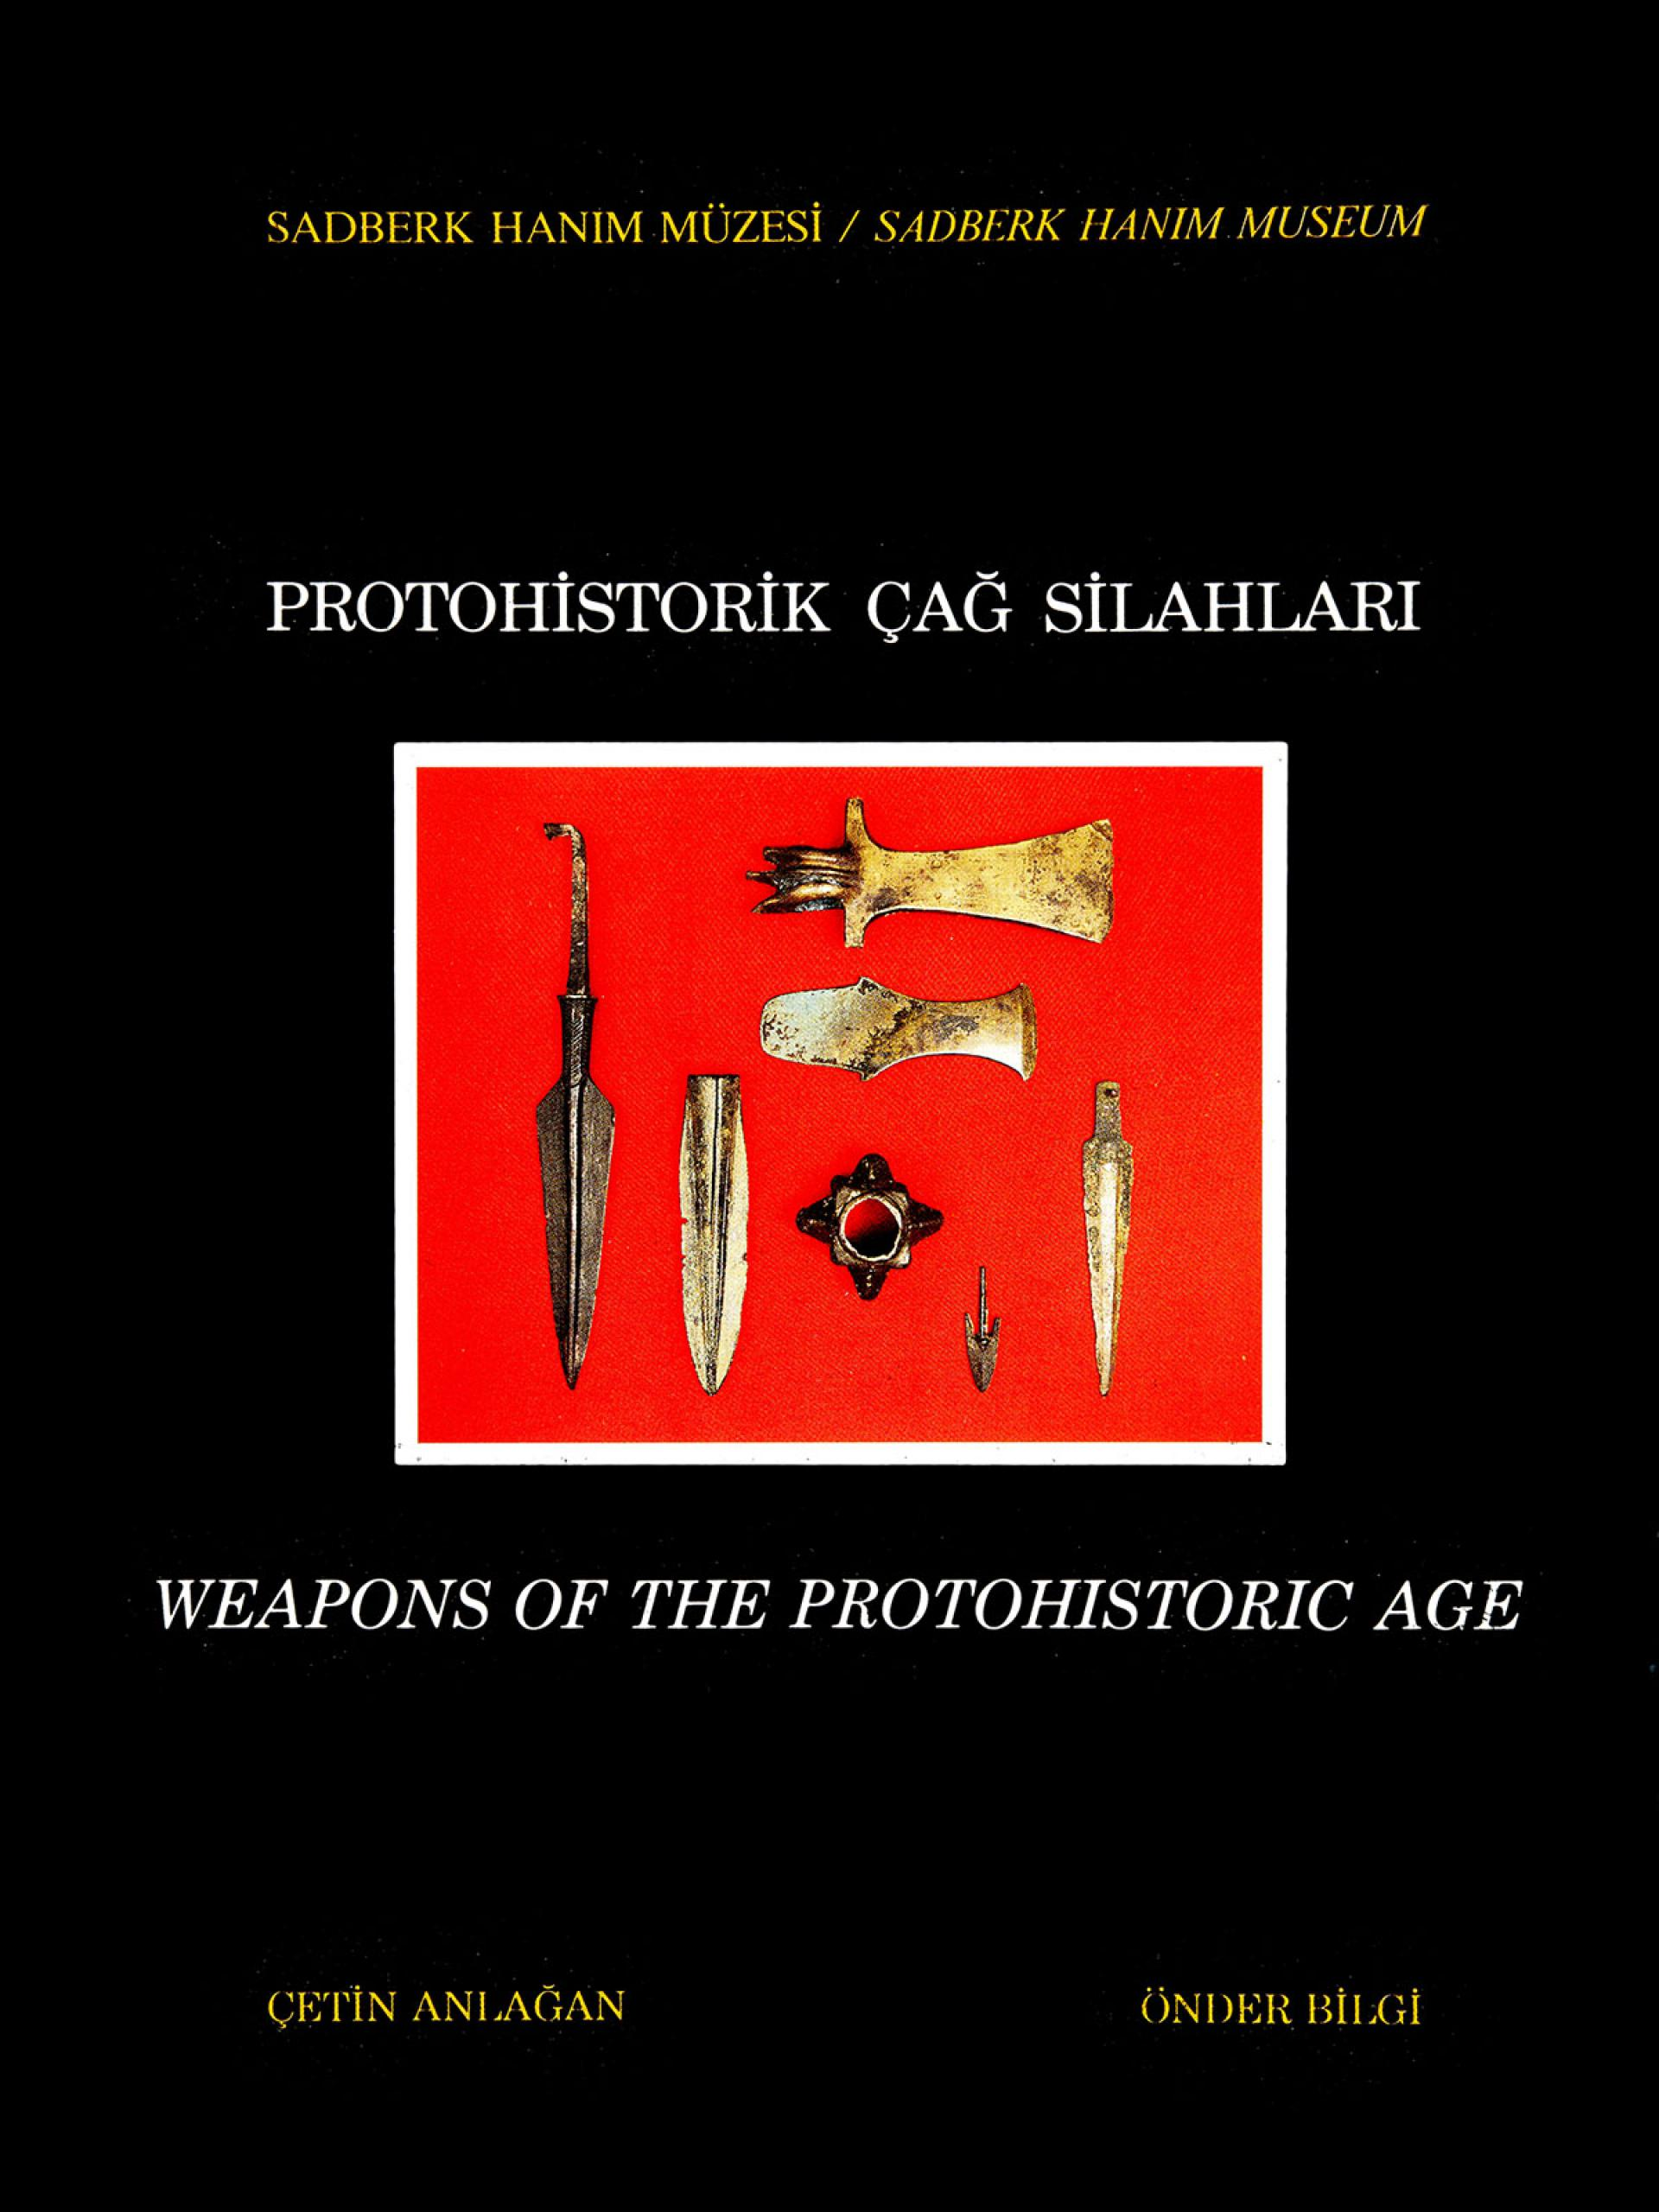 Weapons of the Protohistoric Age - BOOKS - Sadberk Hanım Museum